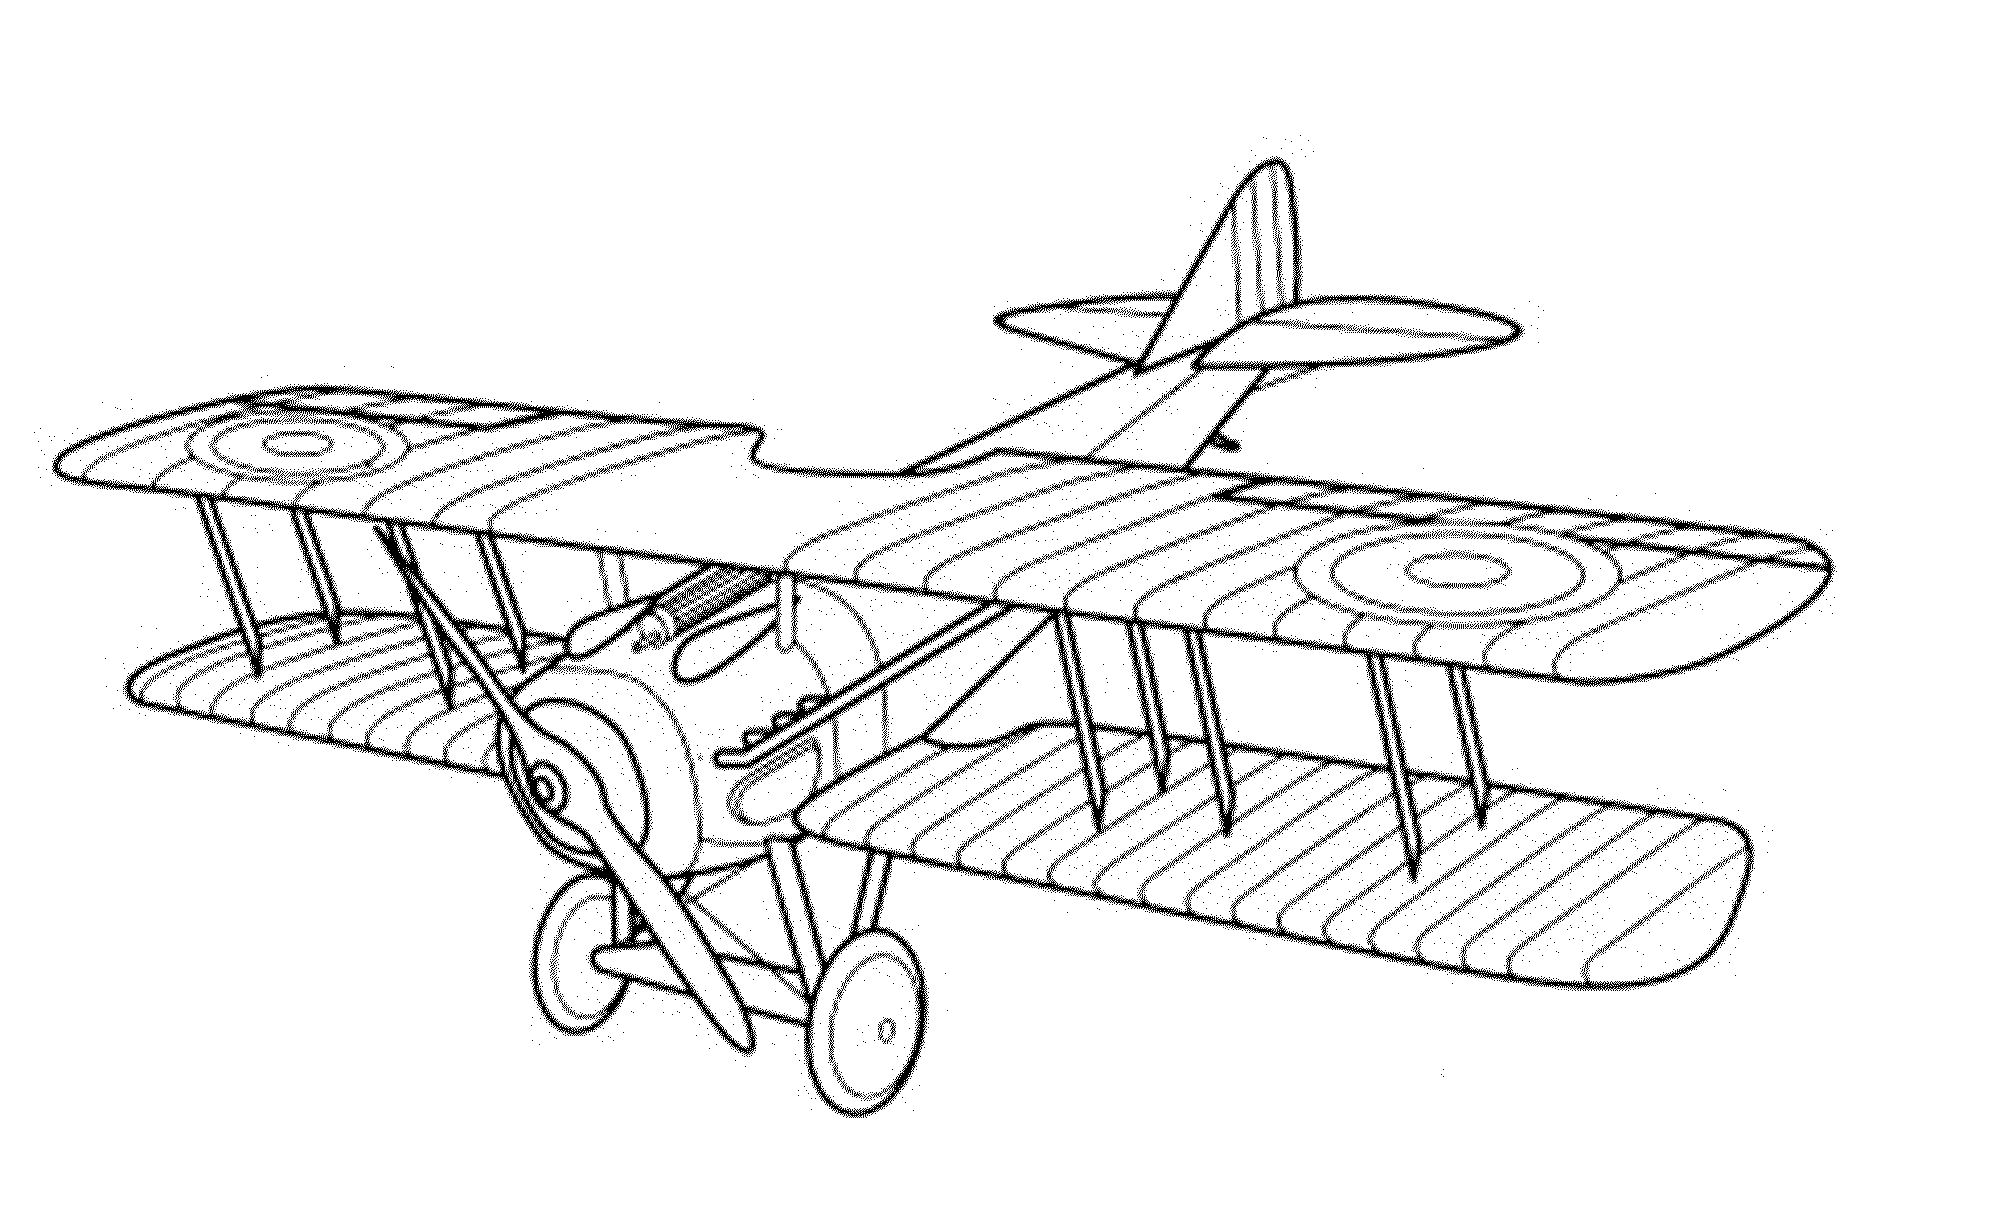 air plane coloring pages free printable airplane coloring pages for kids cool2bkids plane coloring pages air